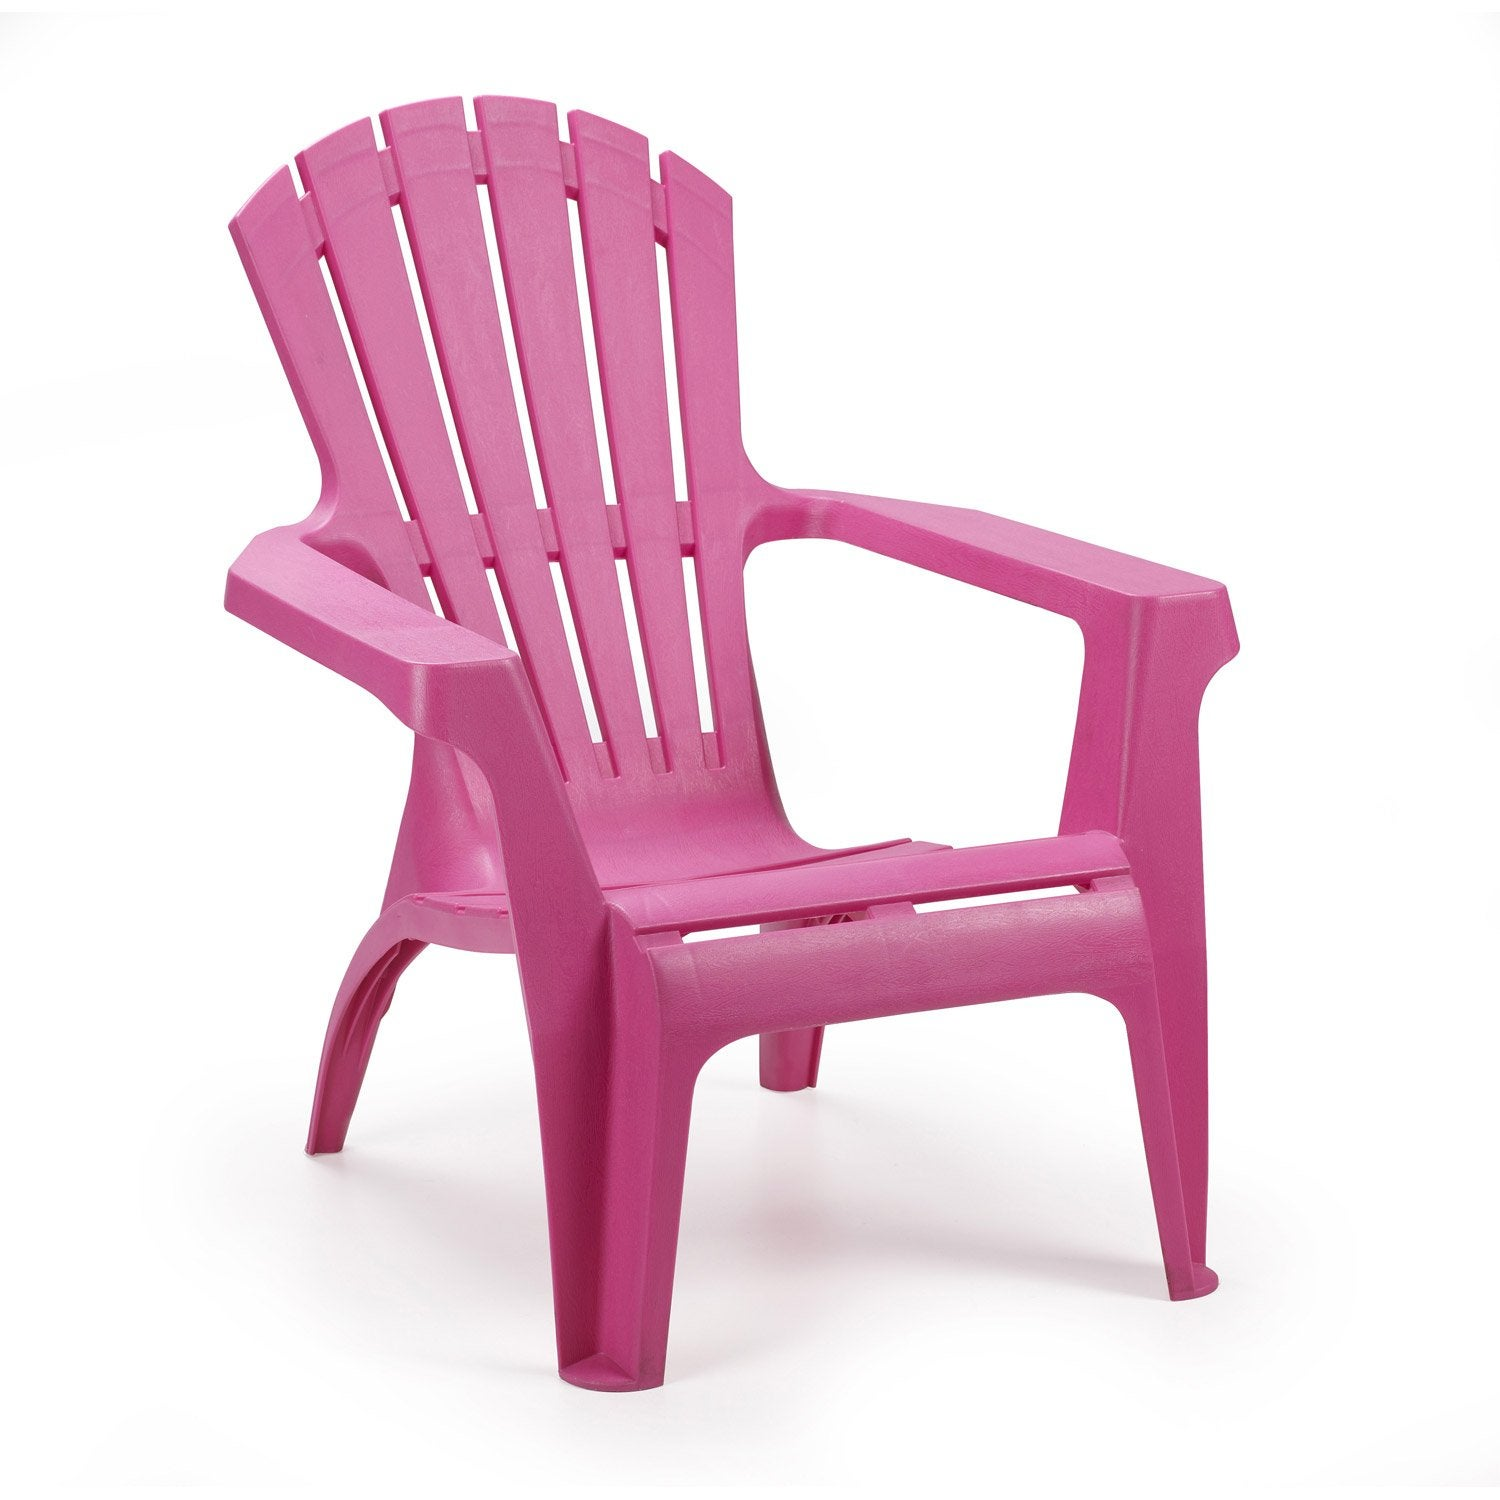 fauteuil bas de jardin en r sine dolomiti fuchsia leroy. Black Bedroom Furniture Sets. Home Design Ideas